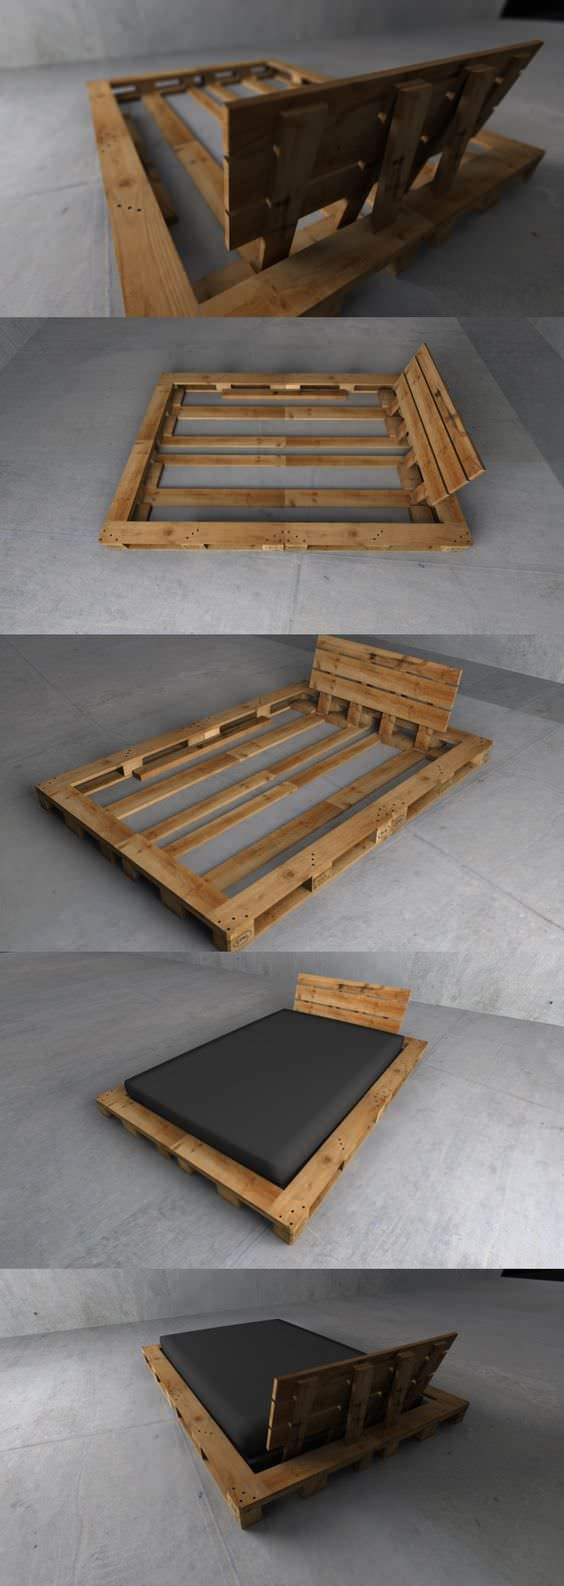 62 Creative Recycled Pallet Beds You'll Never Want To Leave! • 1001 Pallets